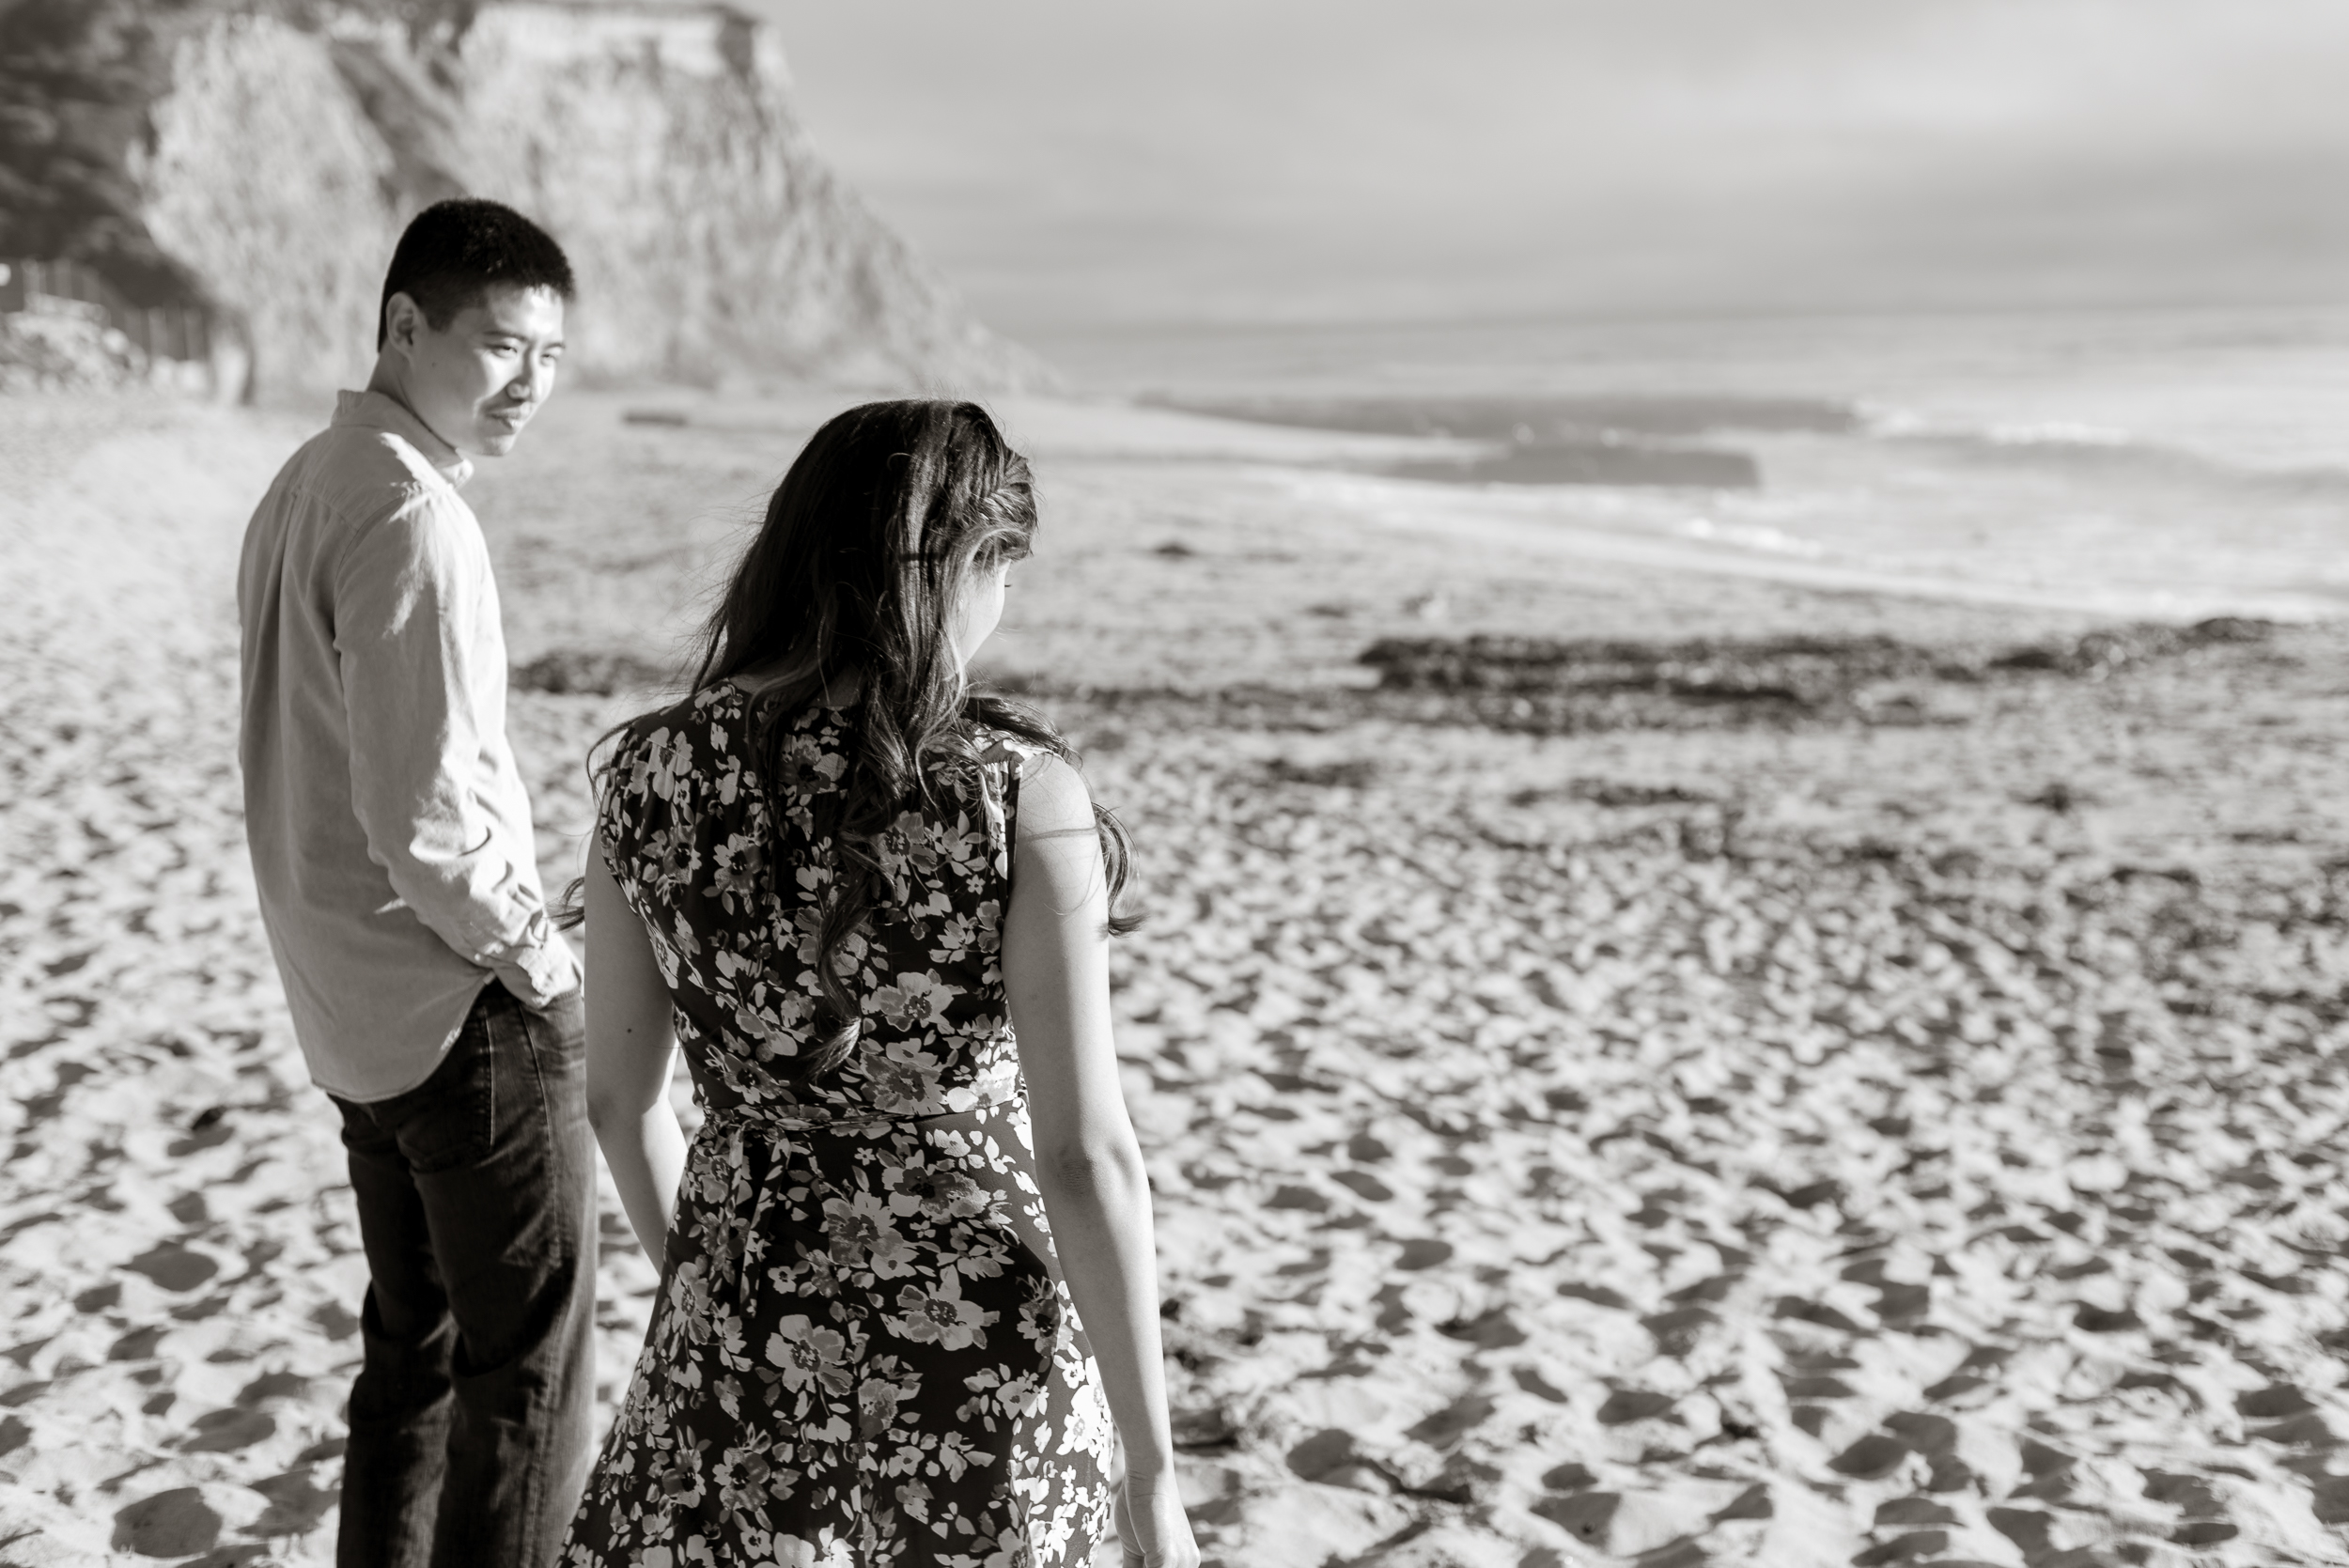 santa-cruz-boardwalk-beach-engagement-vivianchen-09.jpg